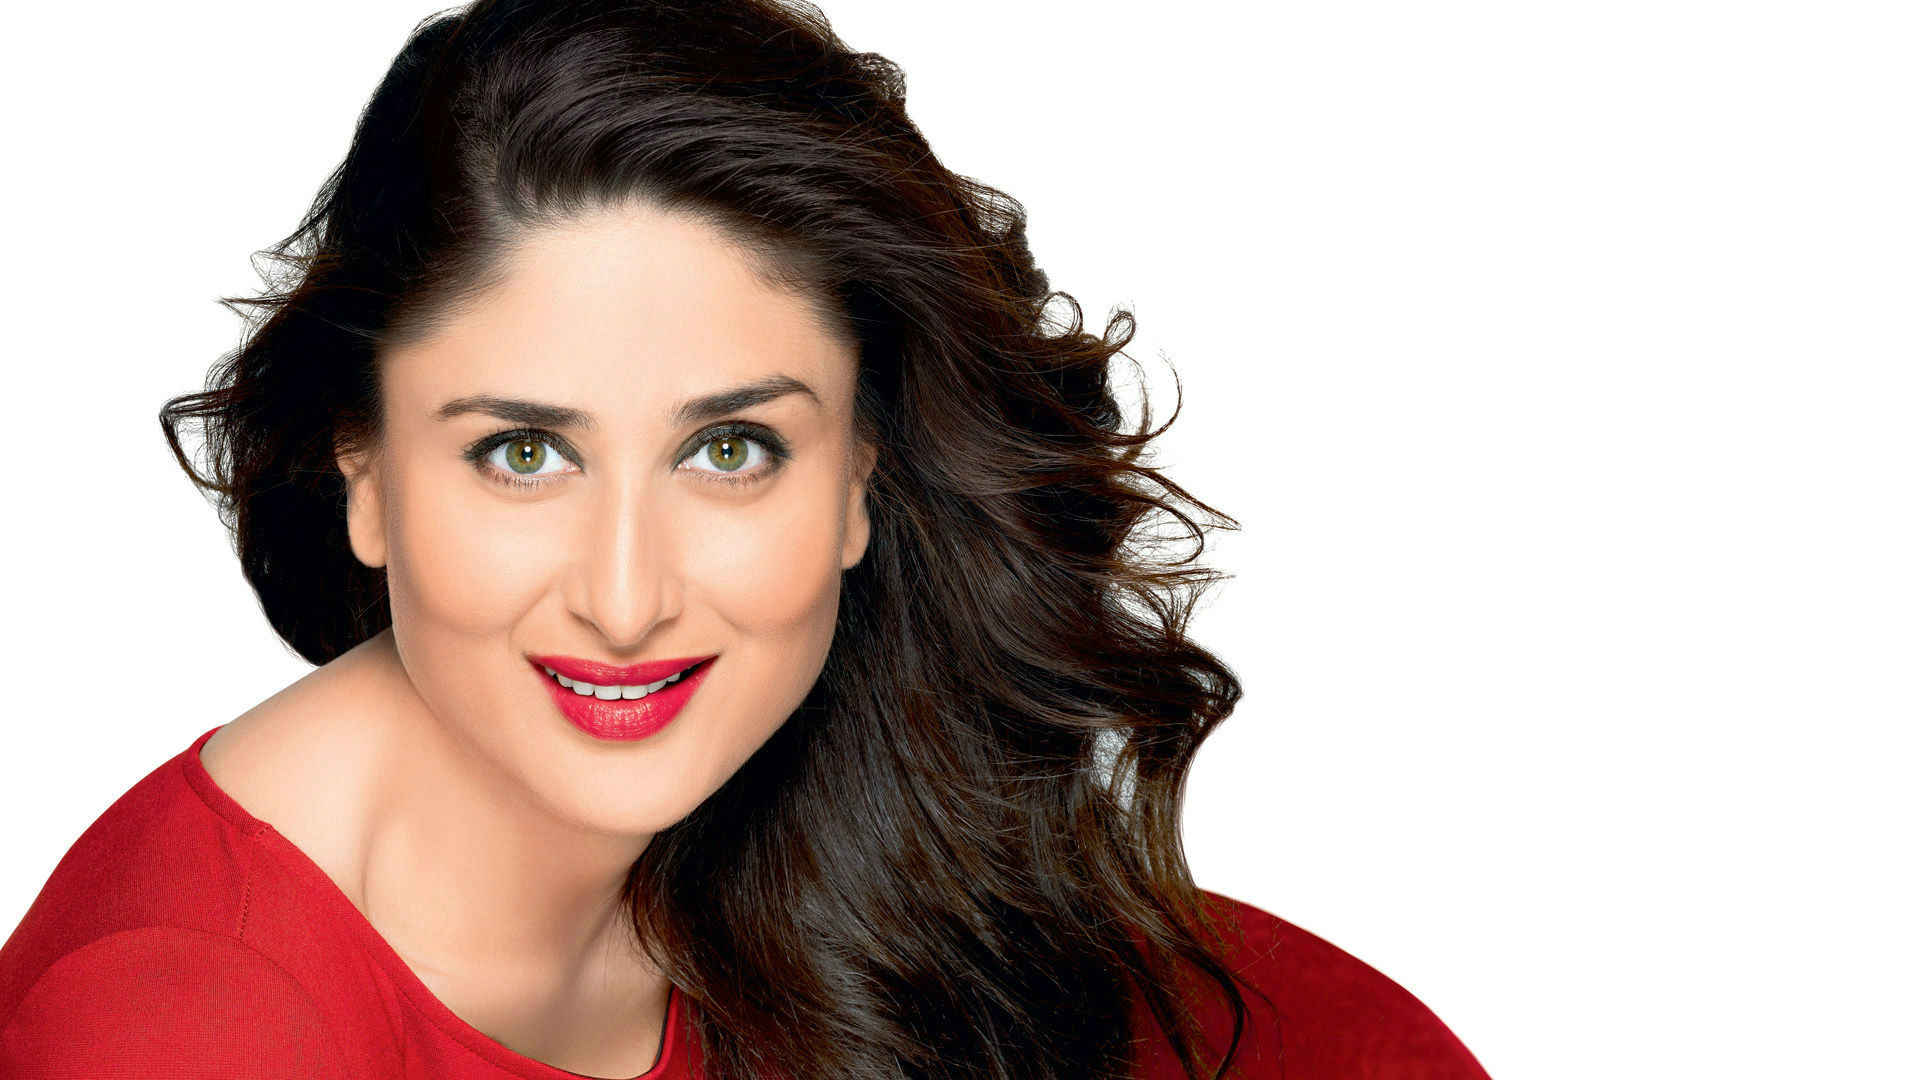 Kareena Kapoor HD Wallpapers 2015 ImageTownin 1920x1080